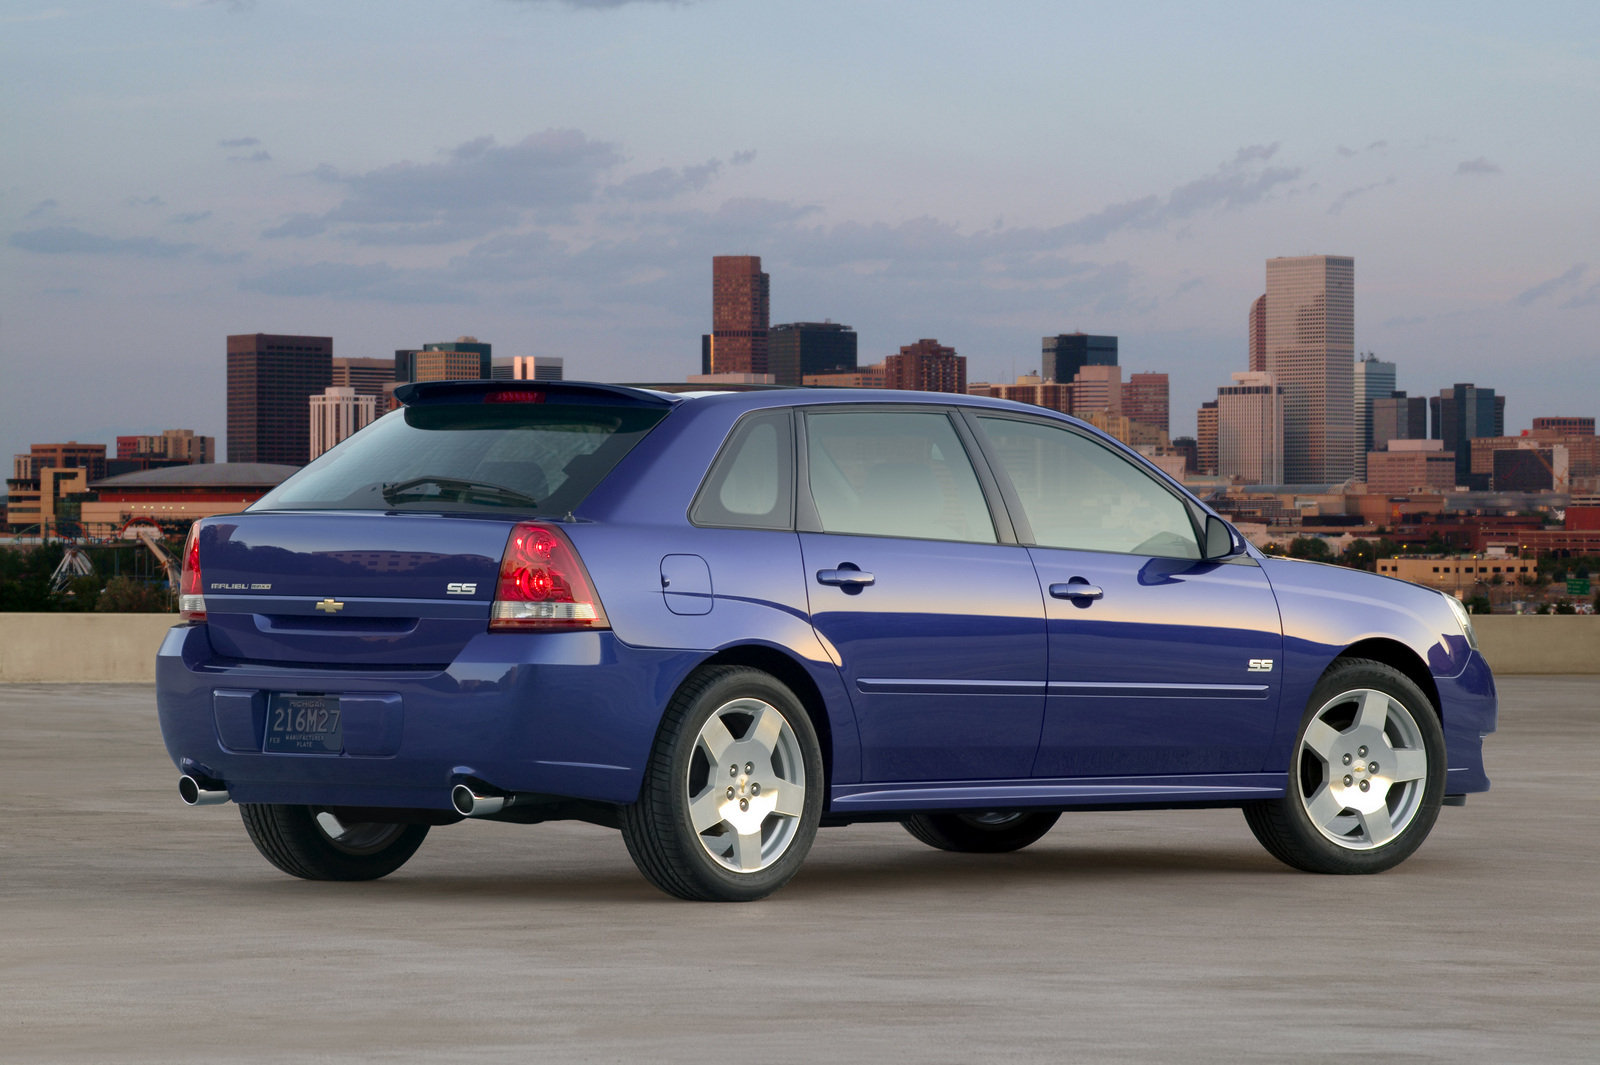 2007 chevrolet malibu maxx ss picture 90315 car review top speed. Cars Review. Best American Auto & Cars Review